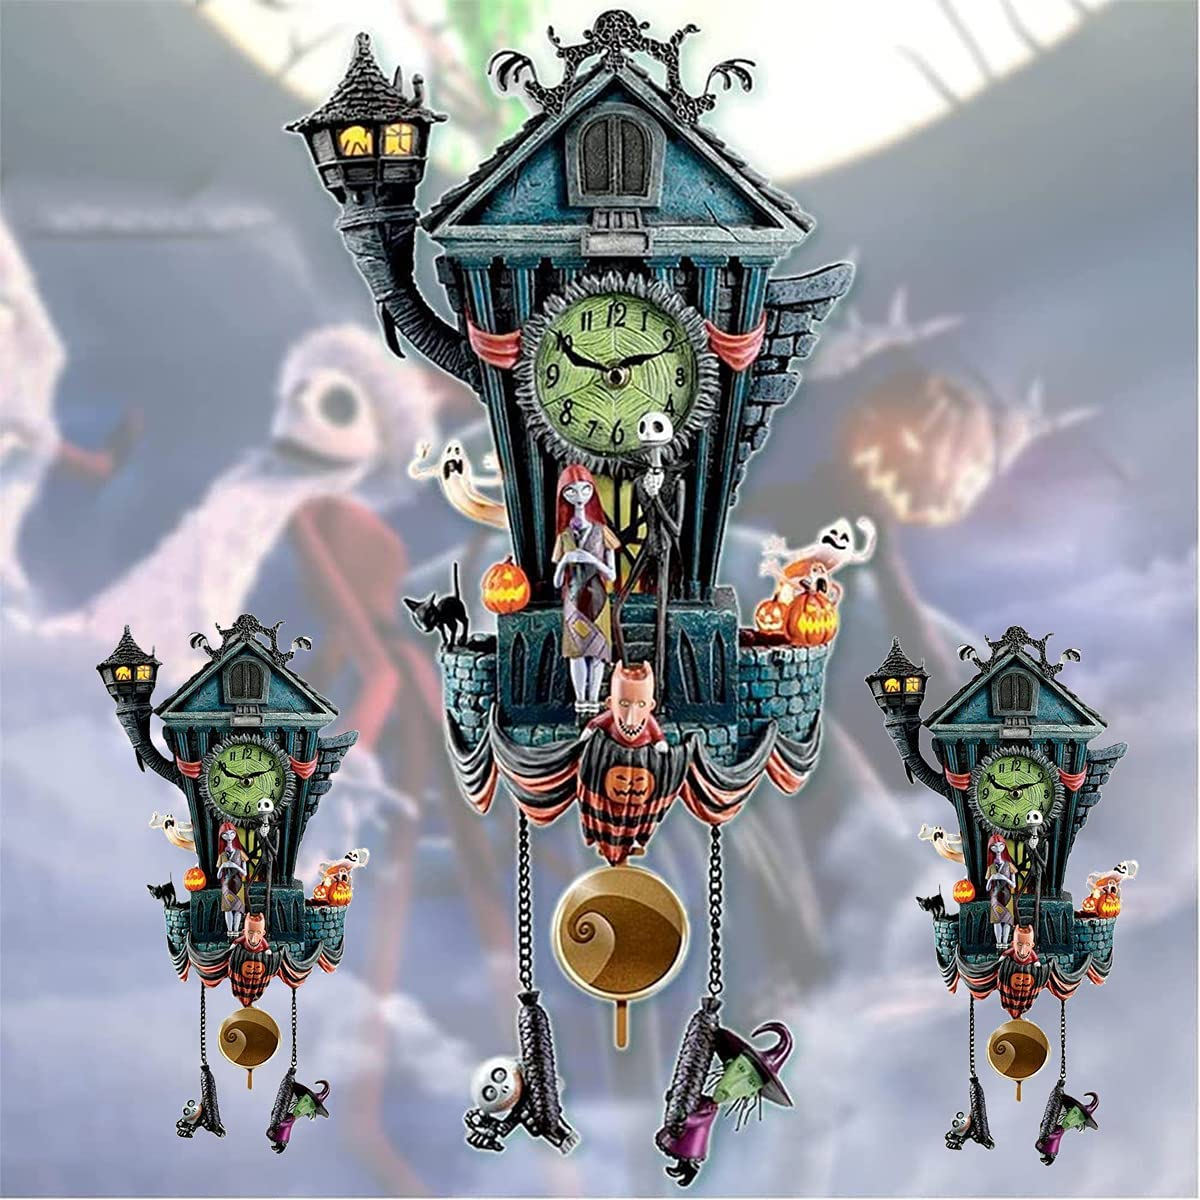 Wall Clock Cuckoo New Large-scale sale Orleans Mall Paper Ornaments Halloween Disne for